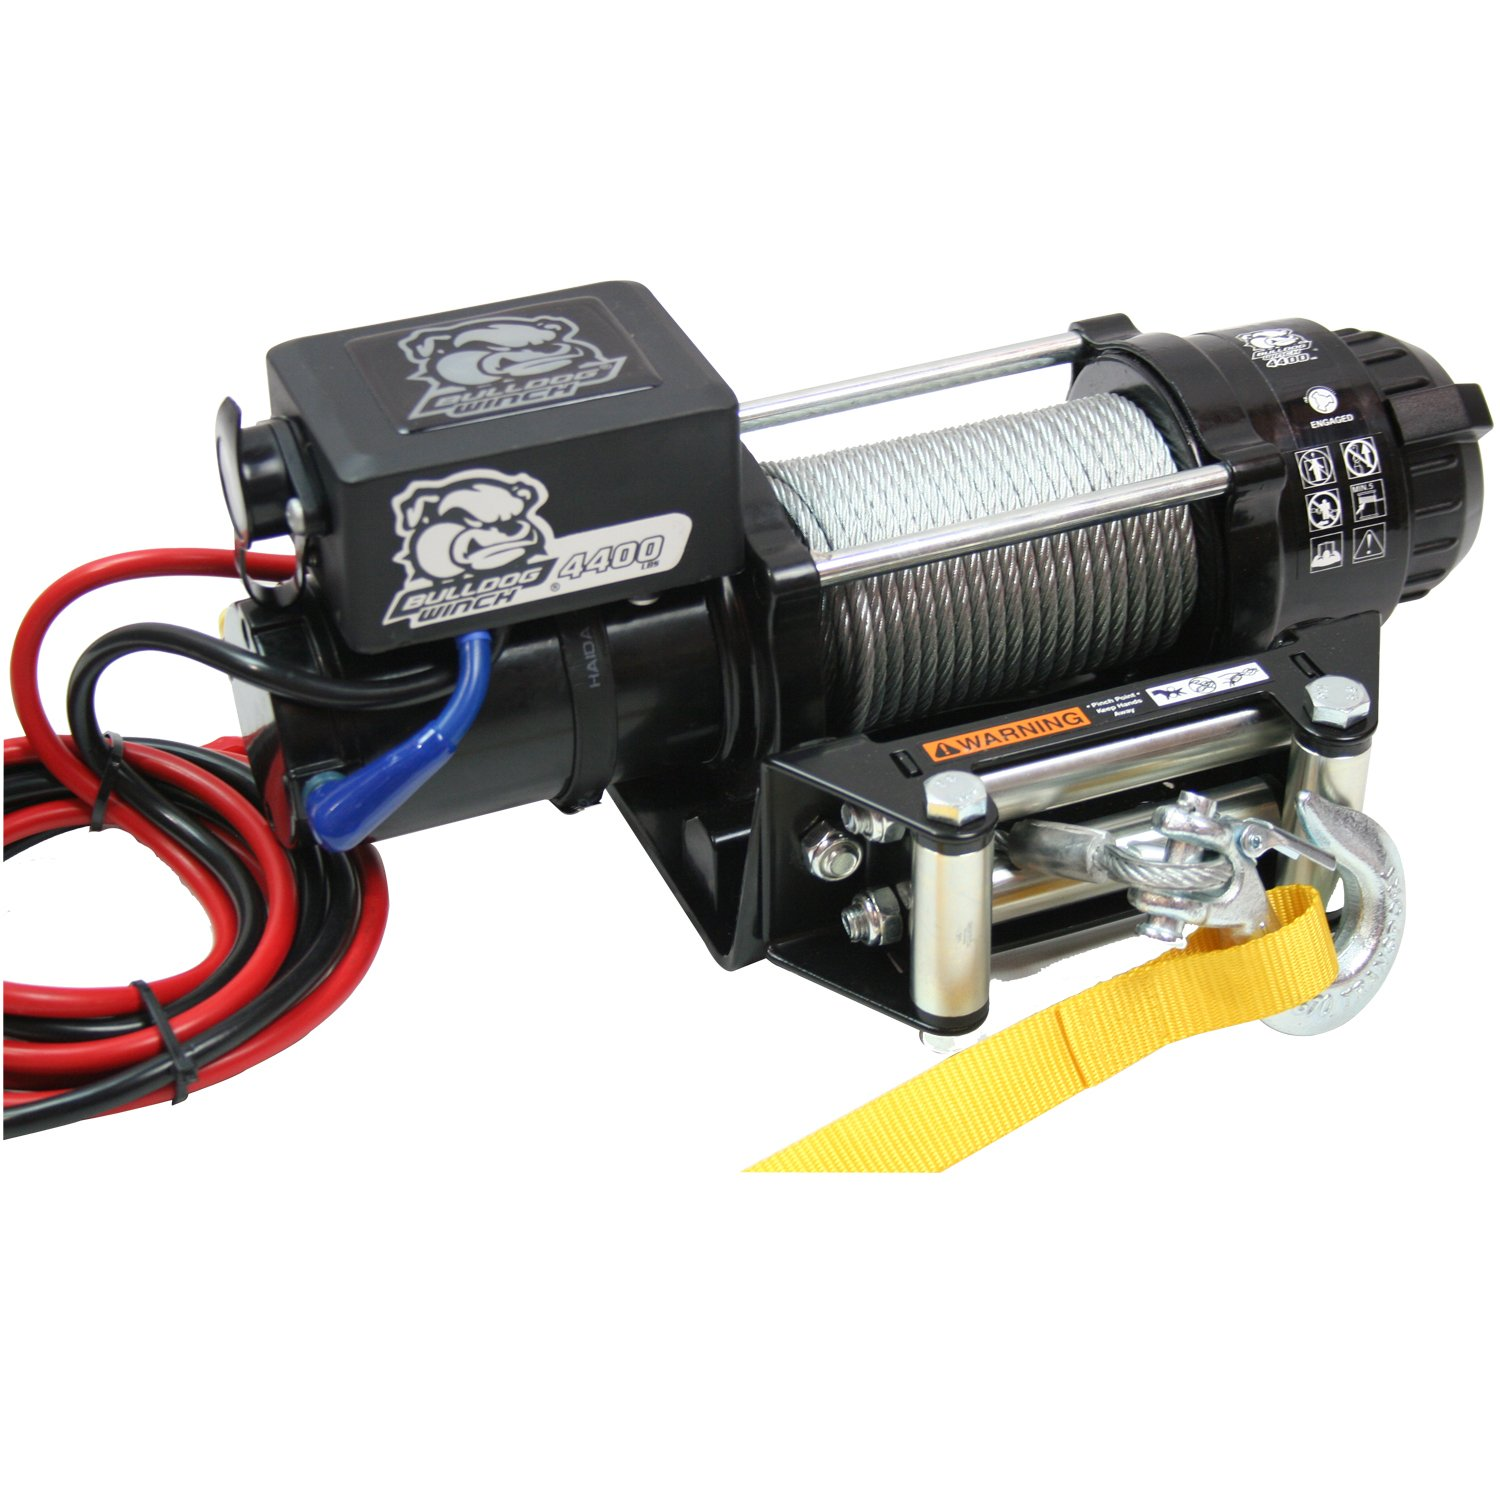 15019 Trailer Winch//Utility Winch Bulldog Winch 4400 Pound